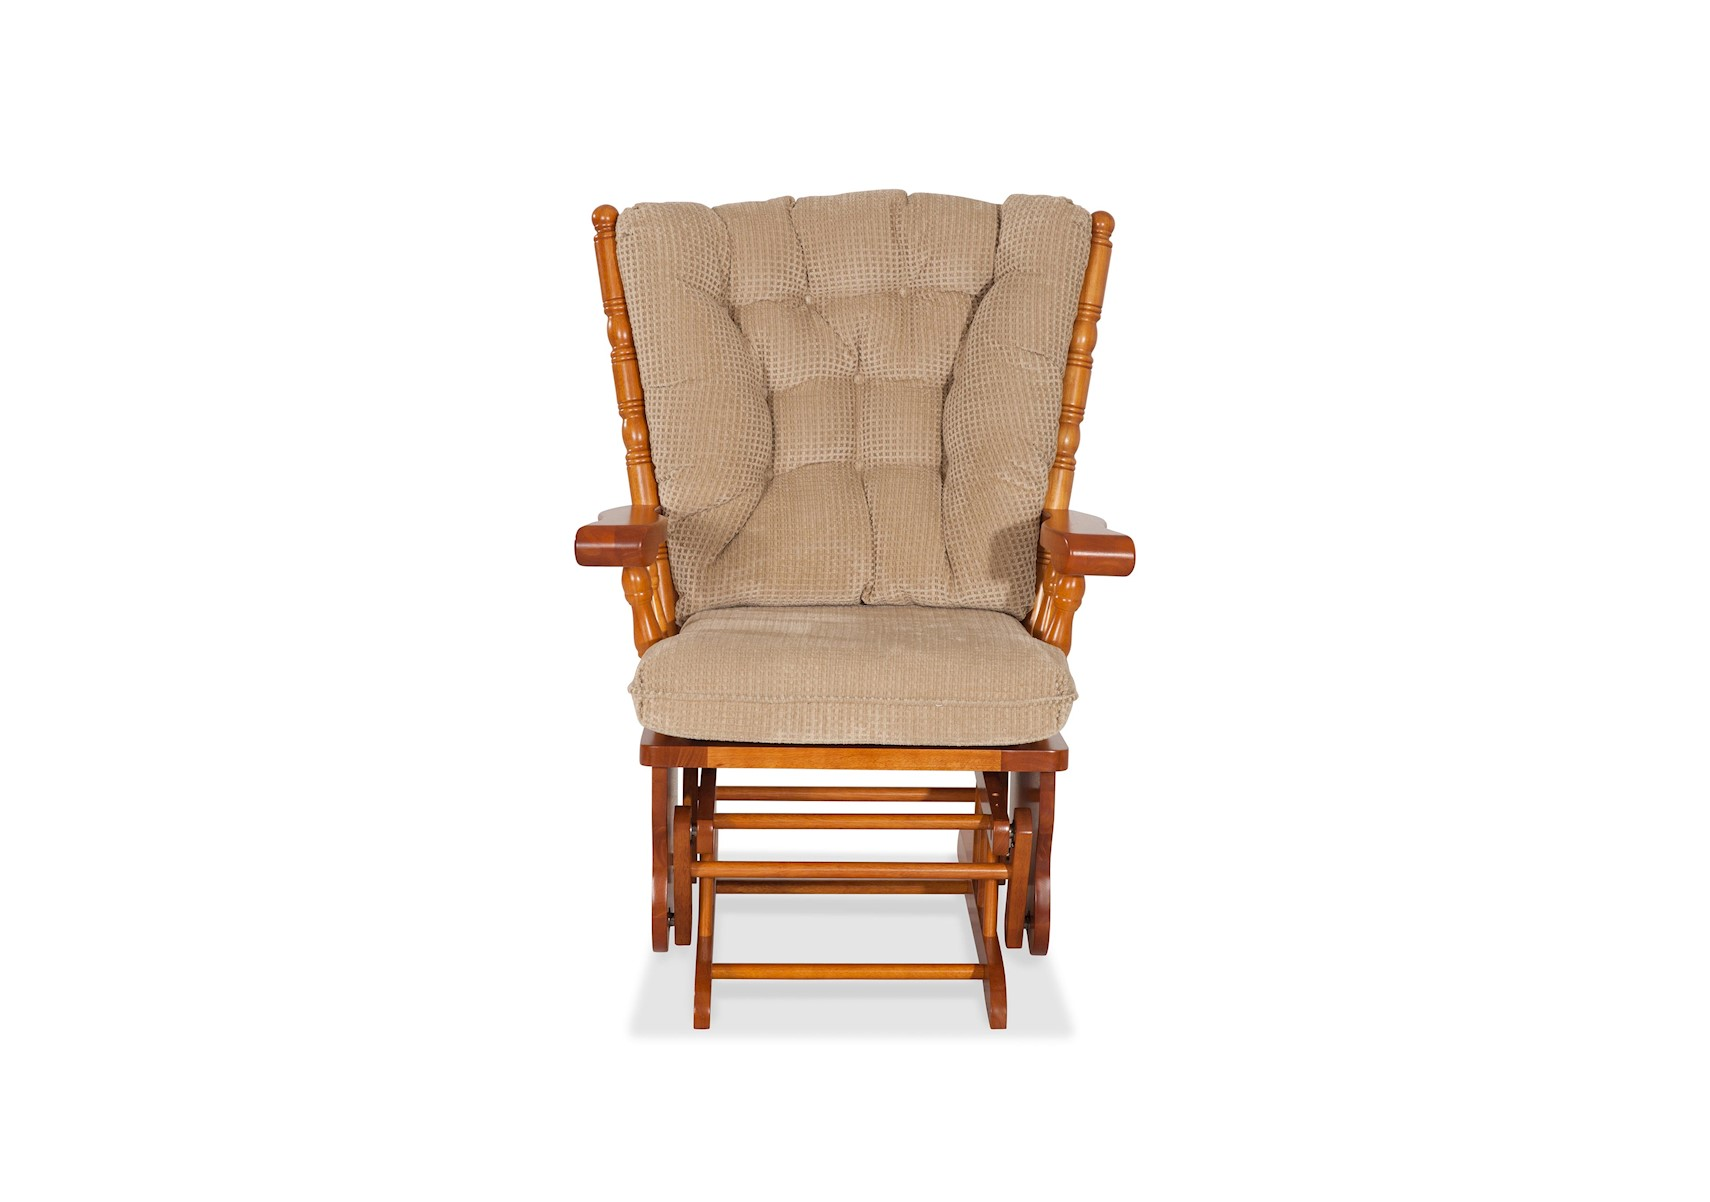 jive chenille living room furniture collection designs for small condos lacks tan glider chairs